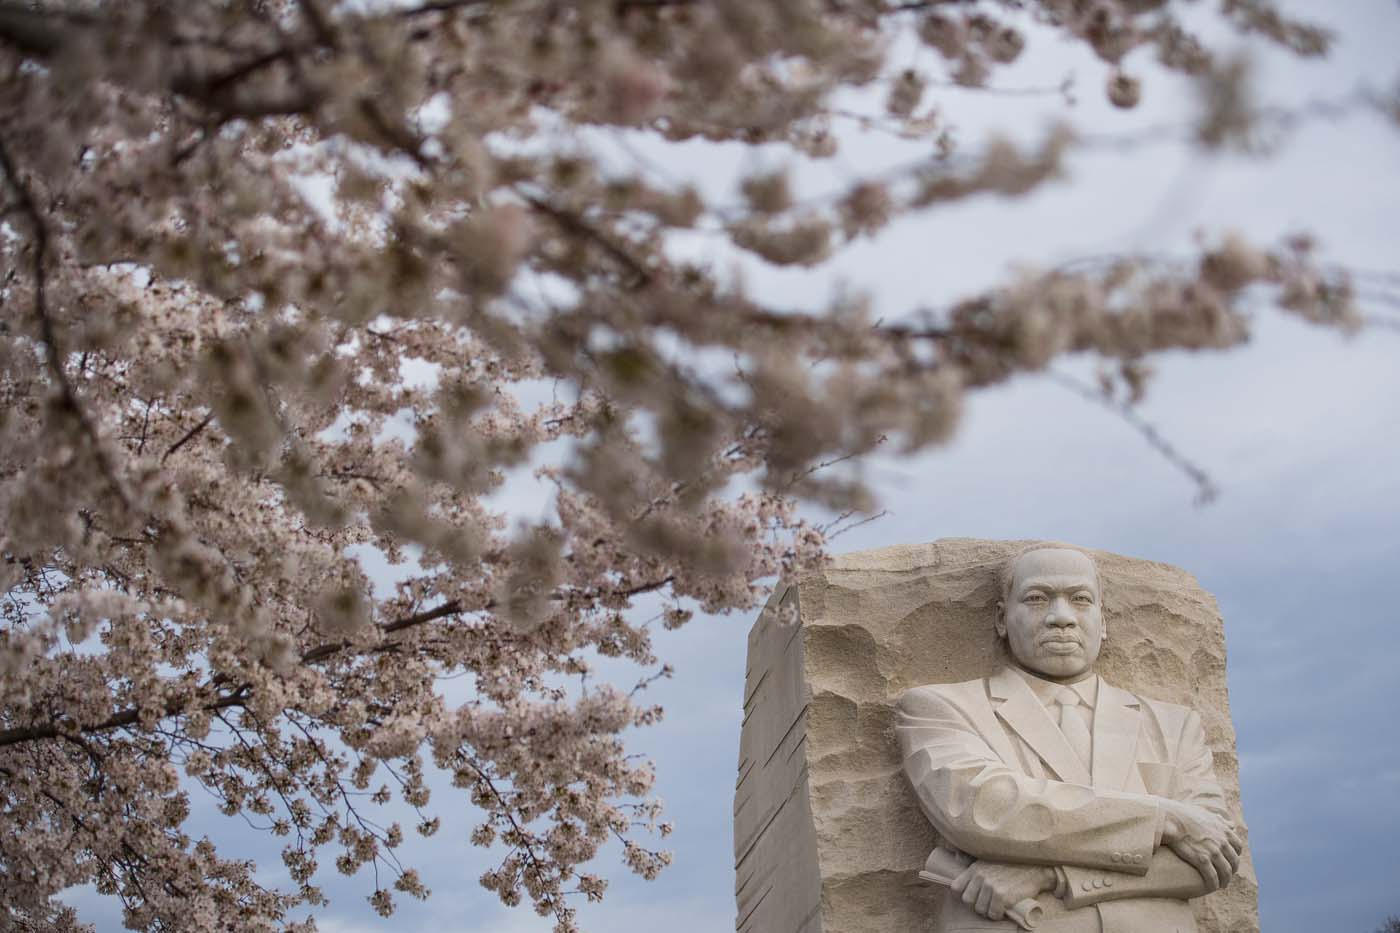 Cherry blossoms bloom near the MLK Monument ahead of a ceremonial wreath laying in honor of the 50th anniversary of the assassination of the Rev. Martin Luther King Jr. in Washington, DC, on April 4, 2018. / AFP PHOTO / JIM WATSON